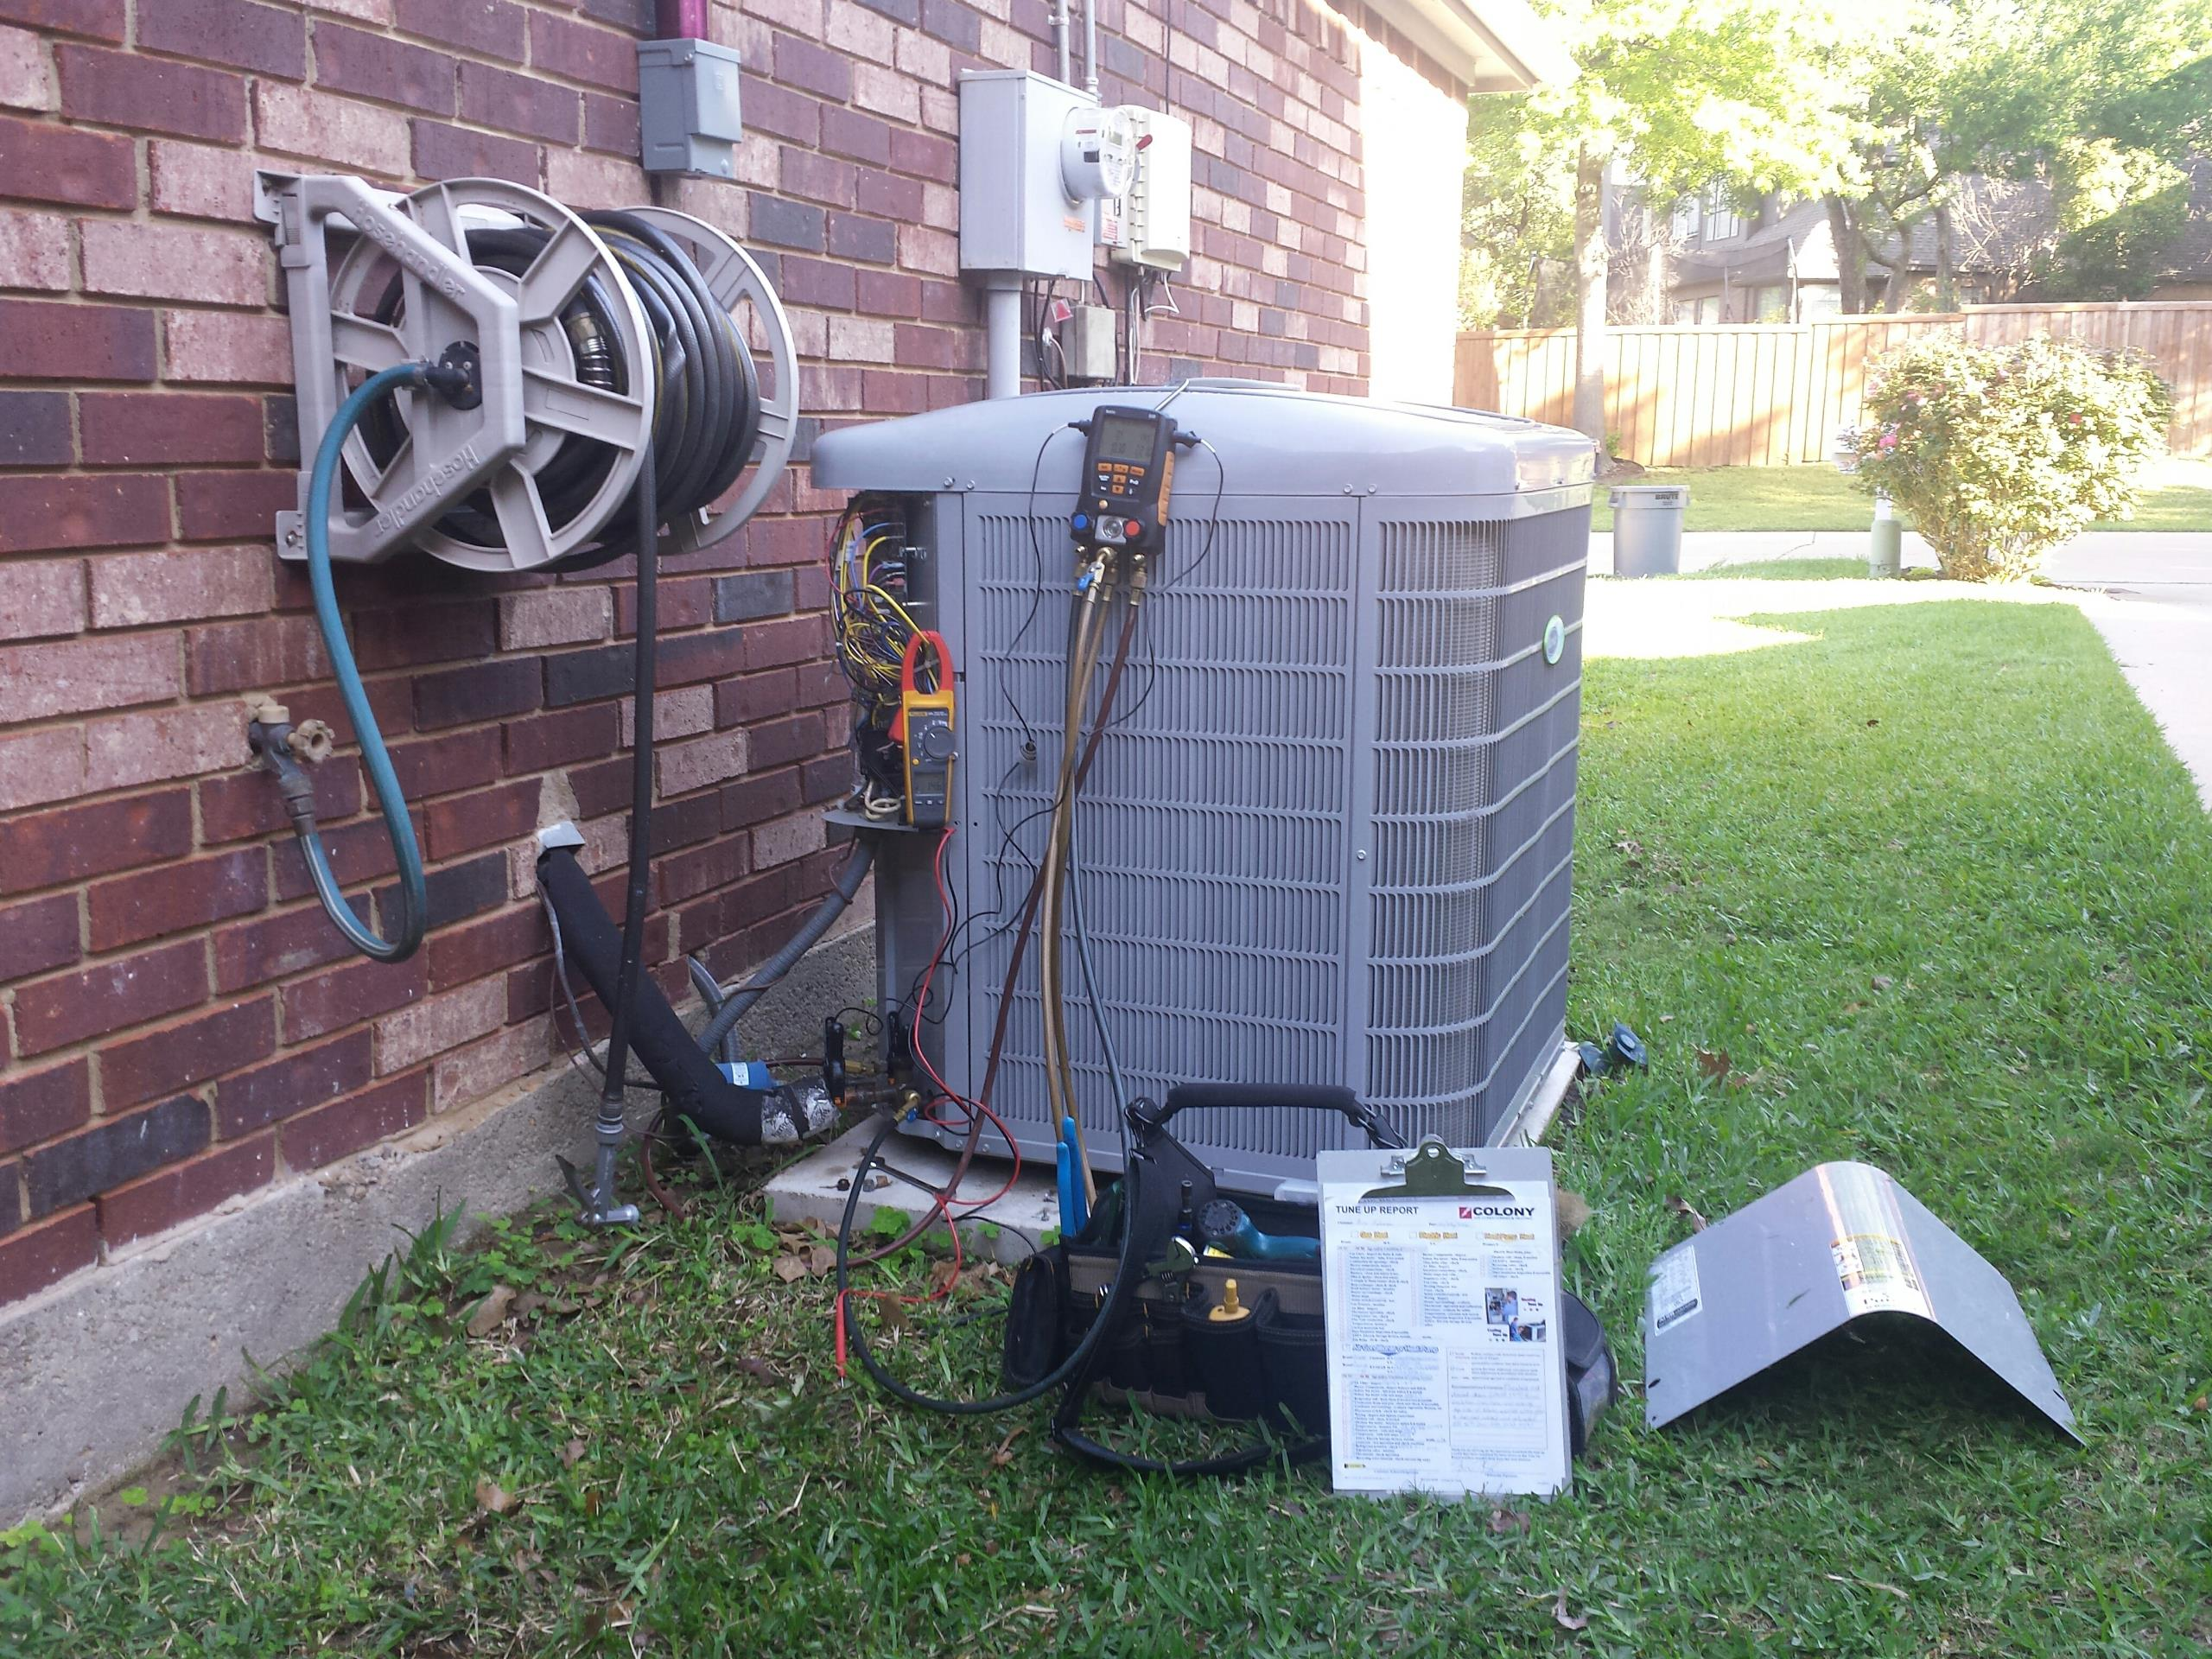 Highland Village, TX - air conditioning service and repair and inspection on a CARRIER AC system in Highland Village.